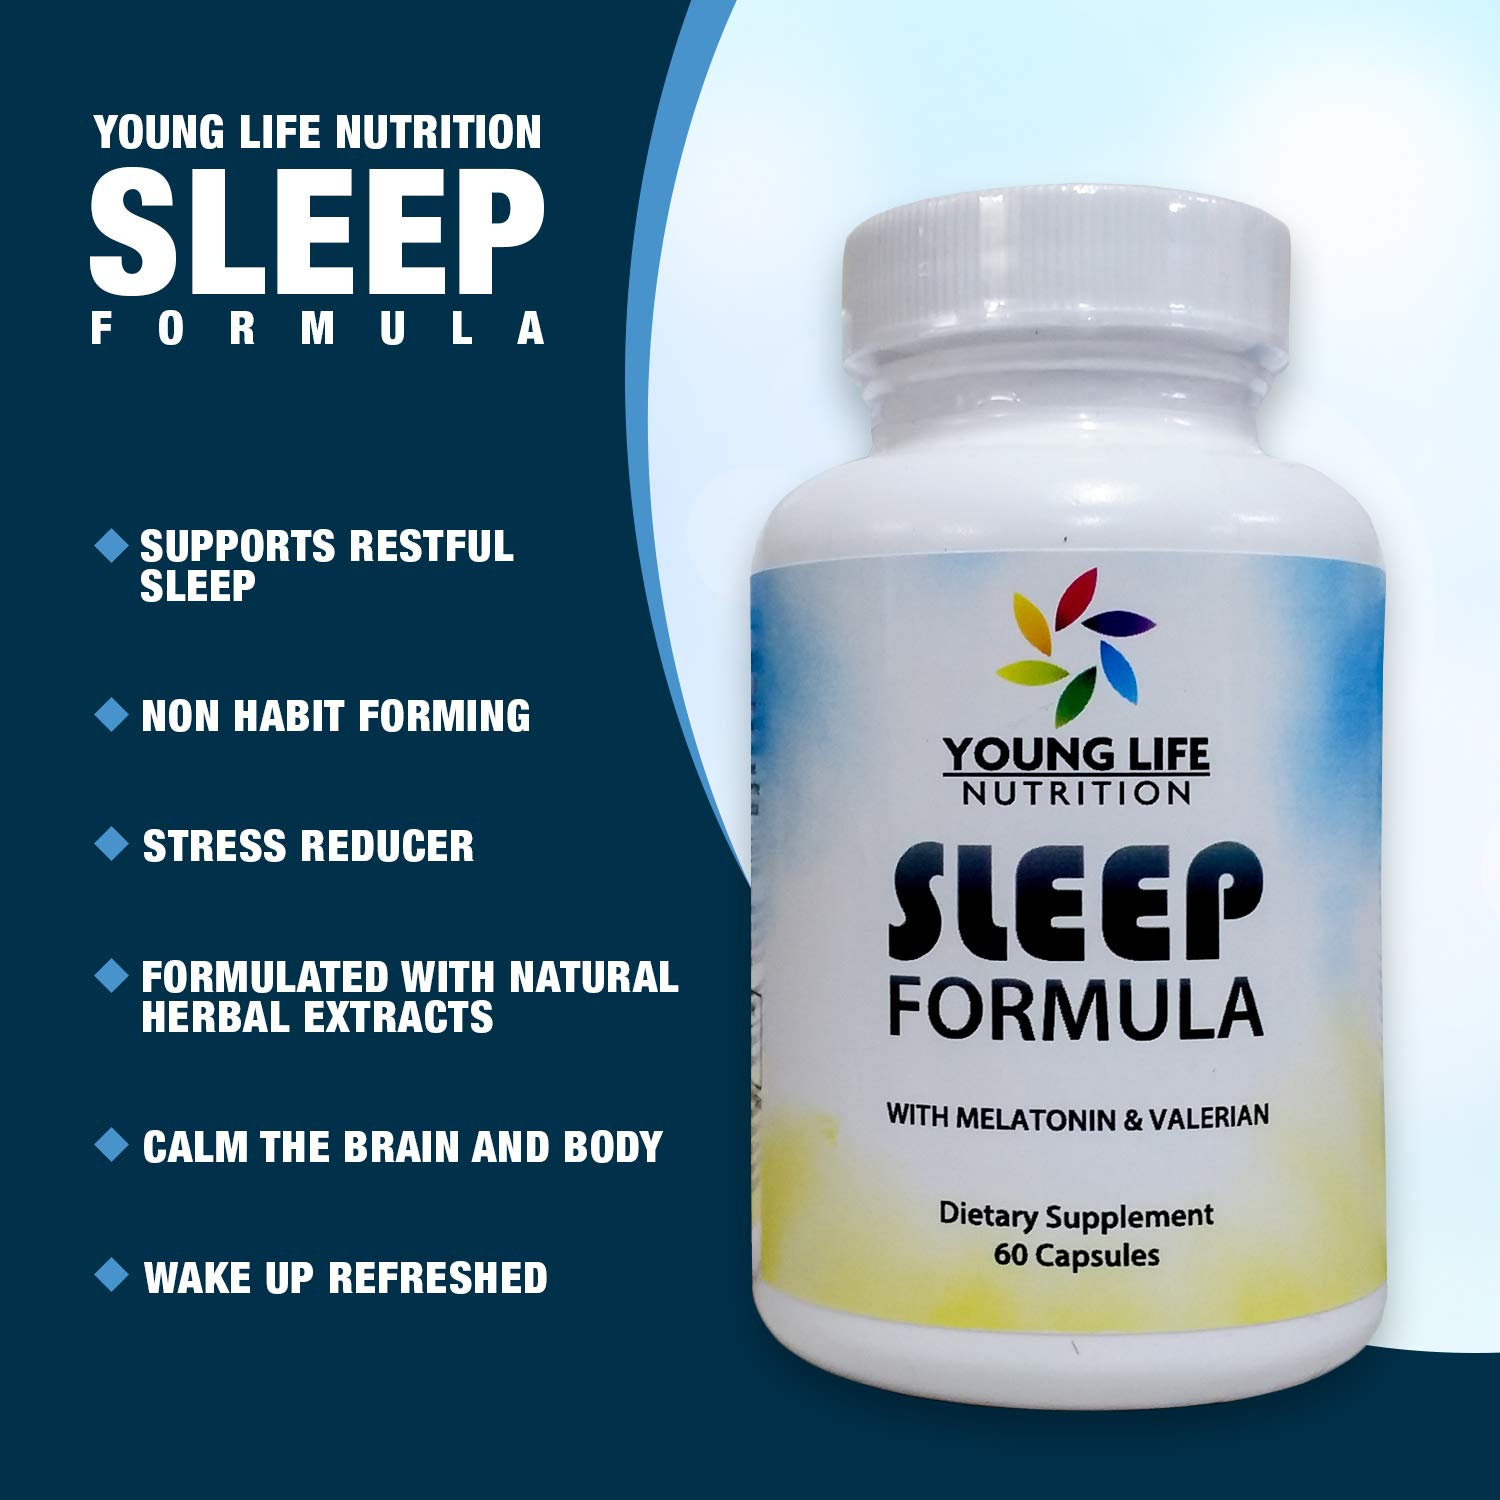 Amazon.com: Sleep Formula with Melatonin & Valerian 60 Capsules: Health & Personal Care